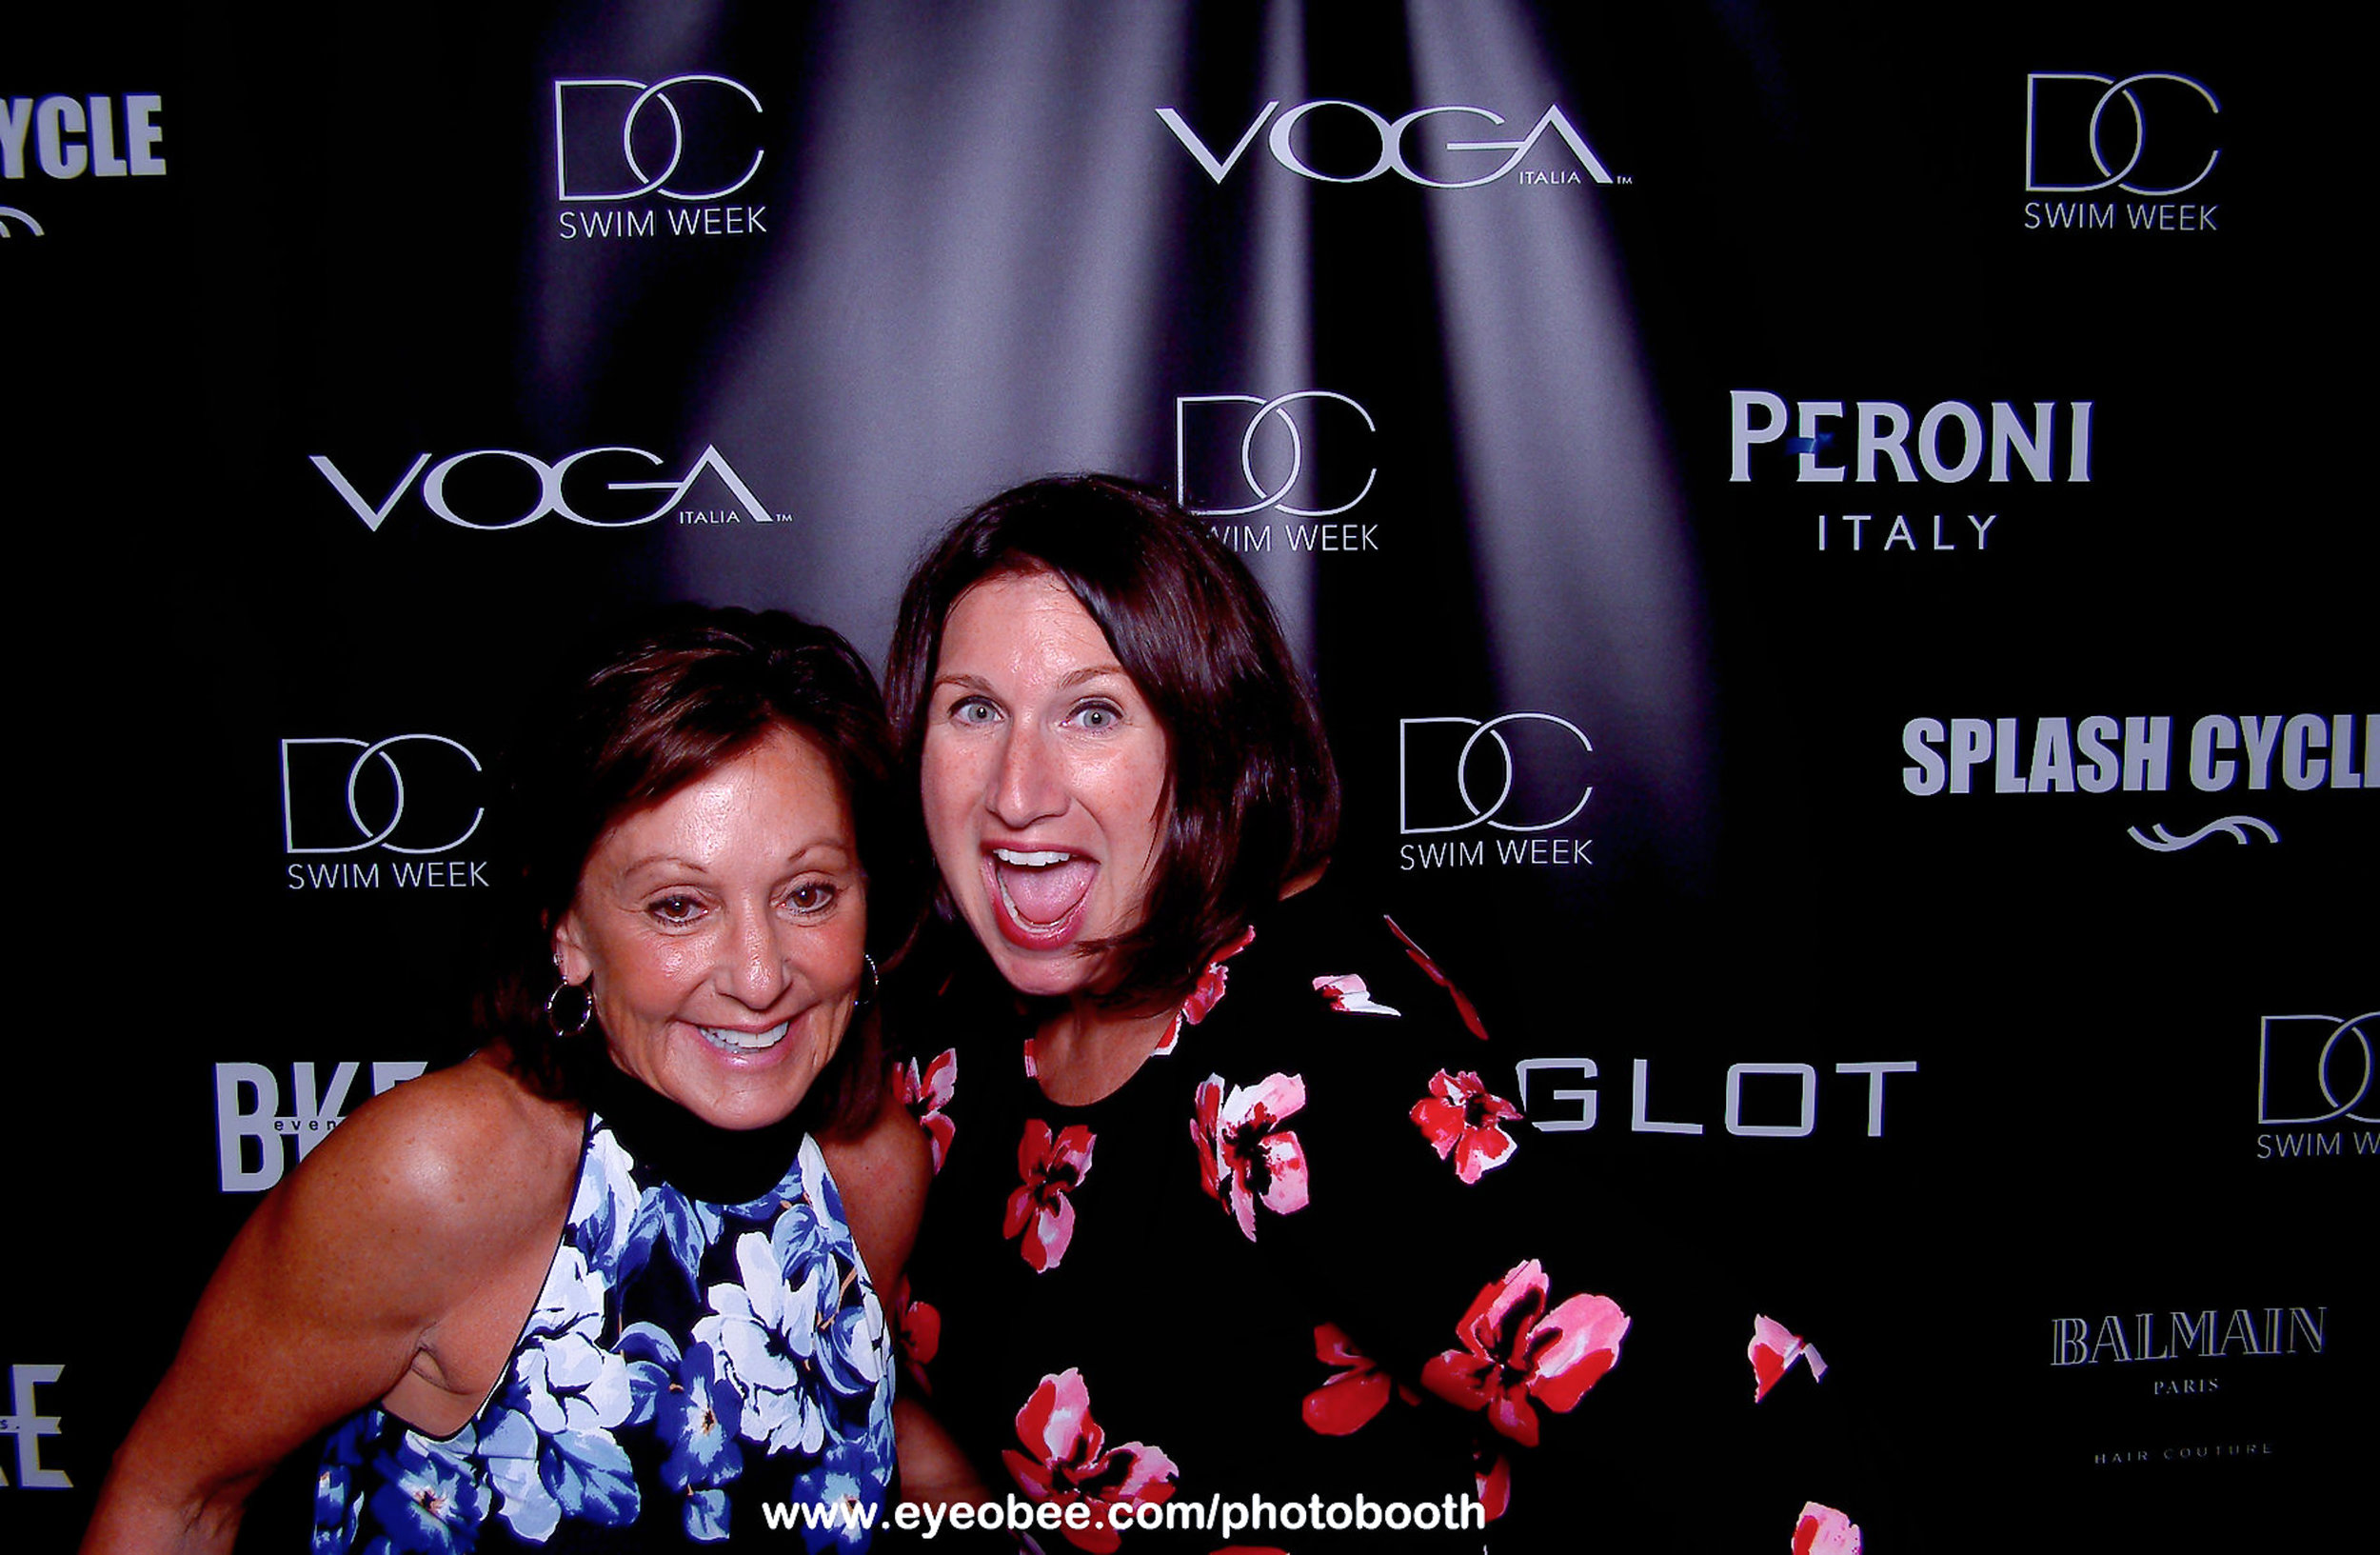 eyeobee PhotoBooth - DCSW-214.jpg